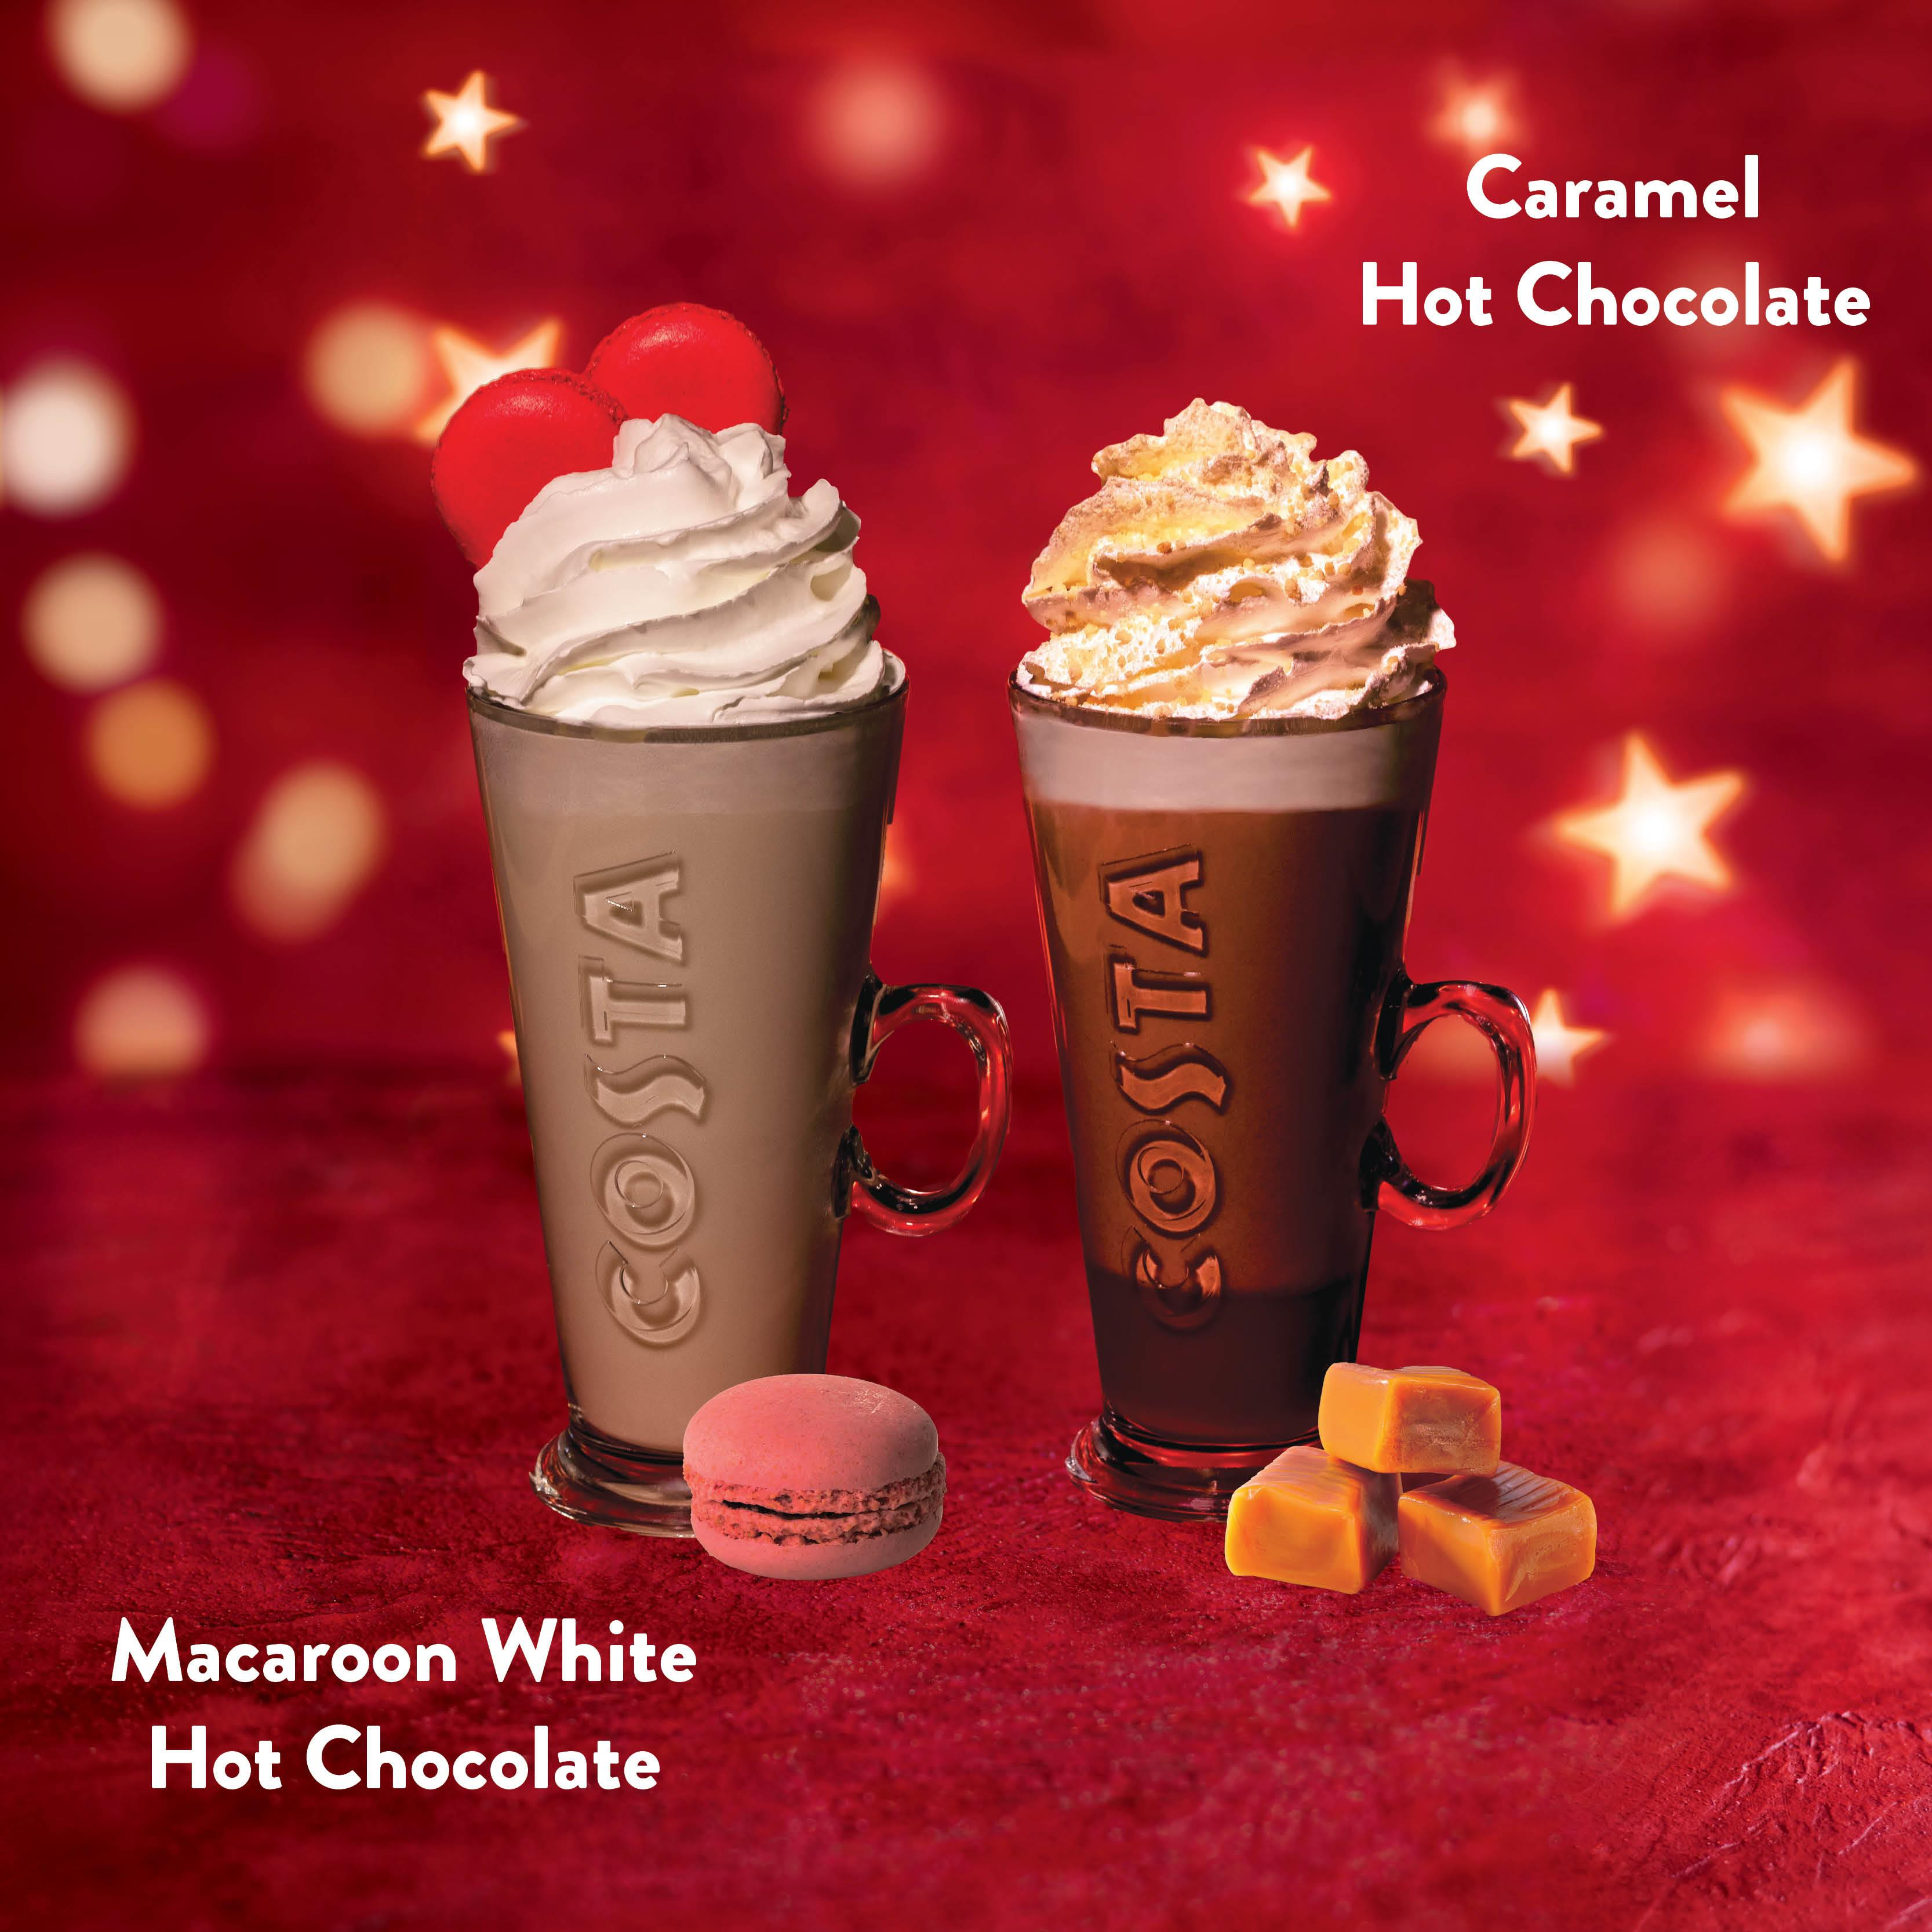 Macaroon & Caramel Hot Chocolate